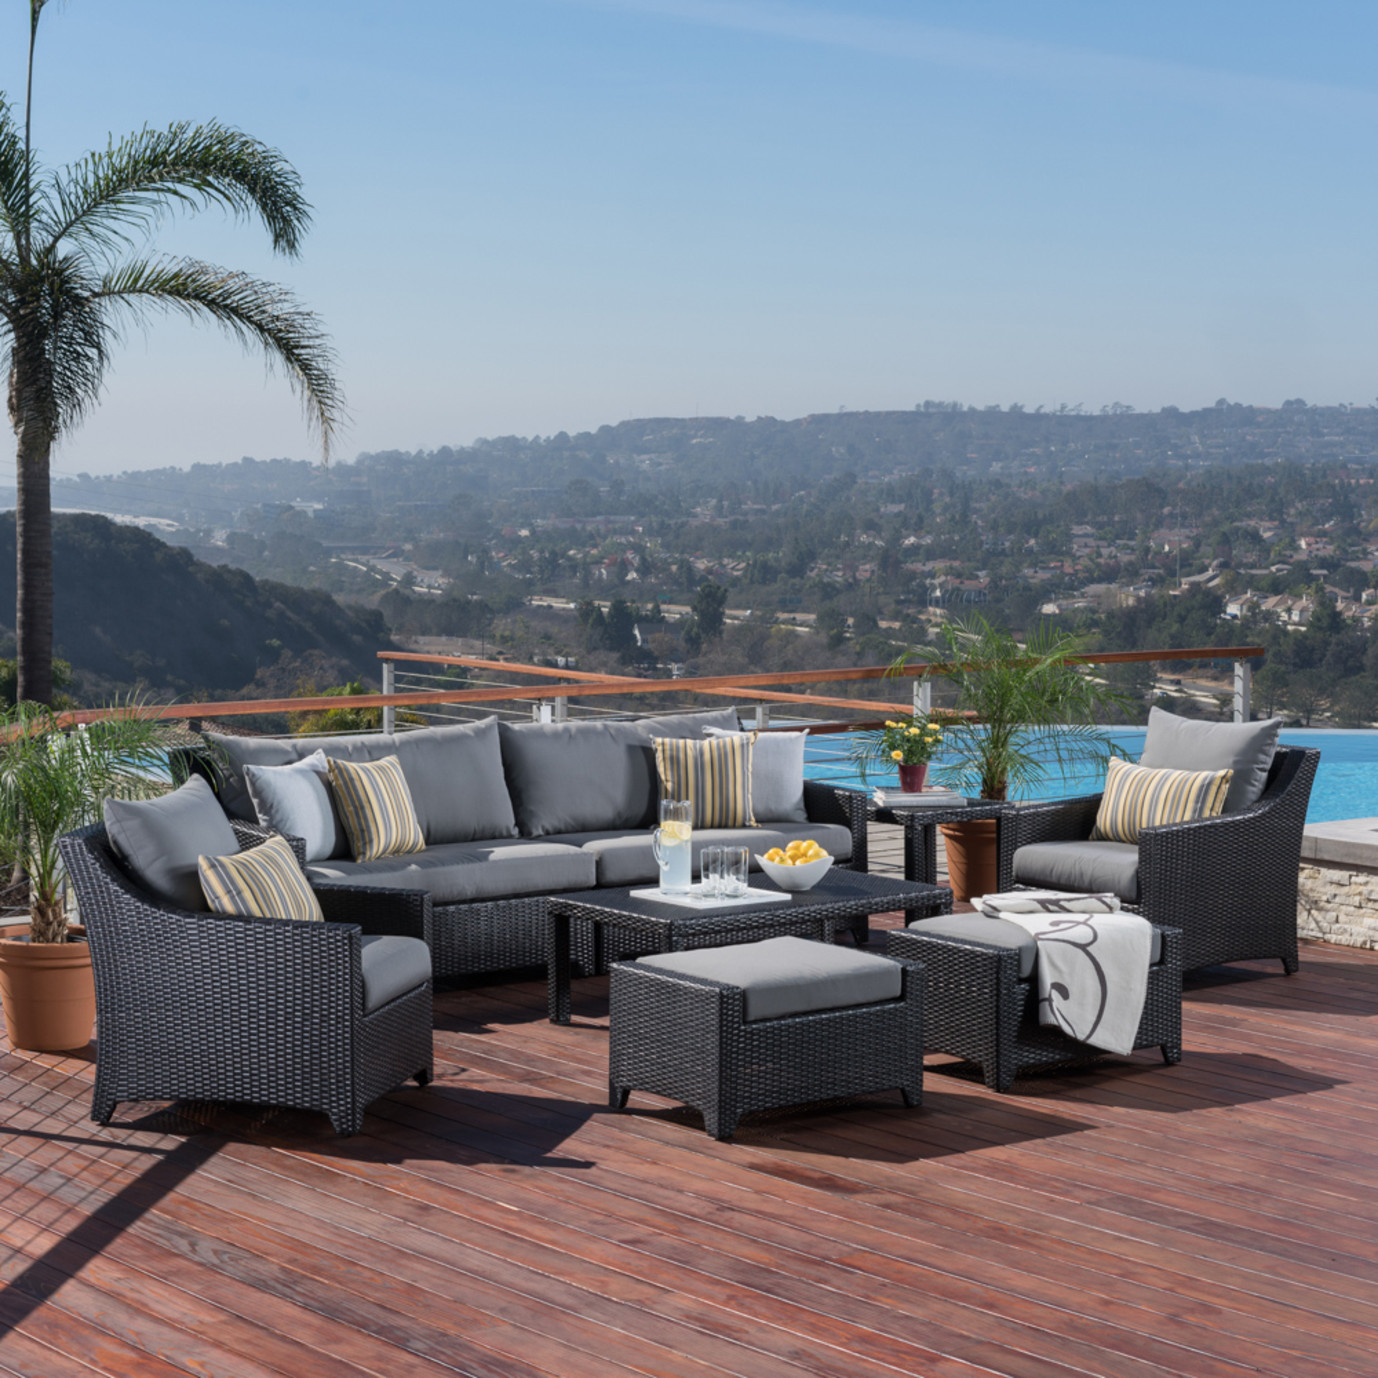 Deco™ 8pc Sofa Set with Furniture Covers - Charcoal Gray